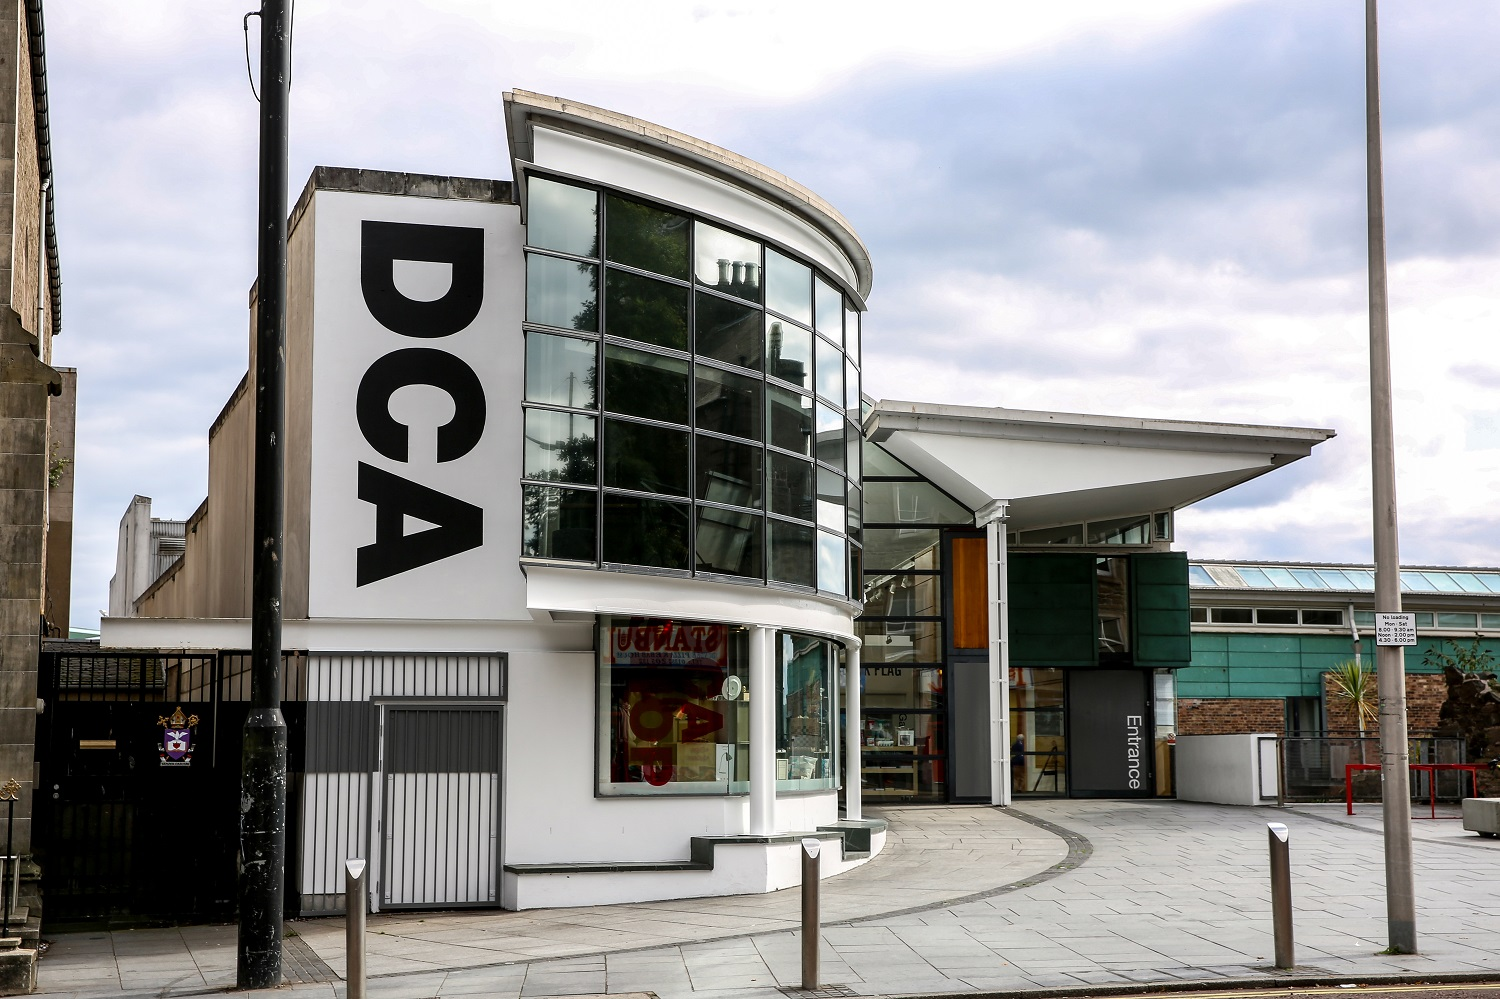 Dundee Contemporary Arts (DCA) 2